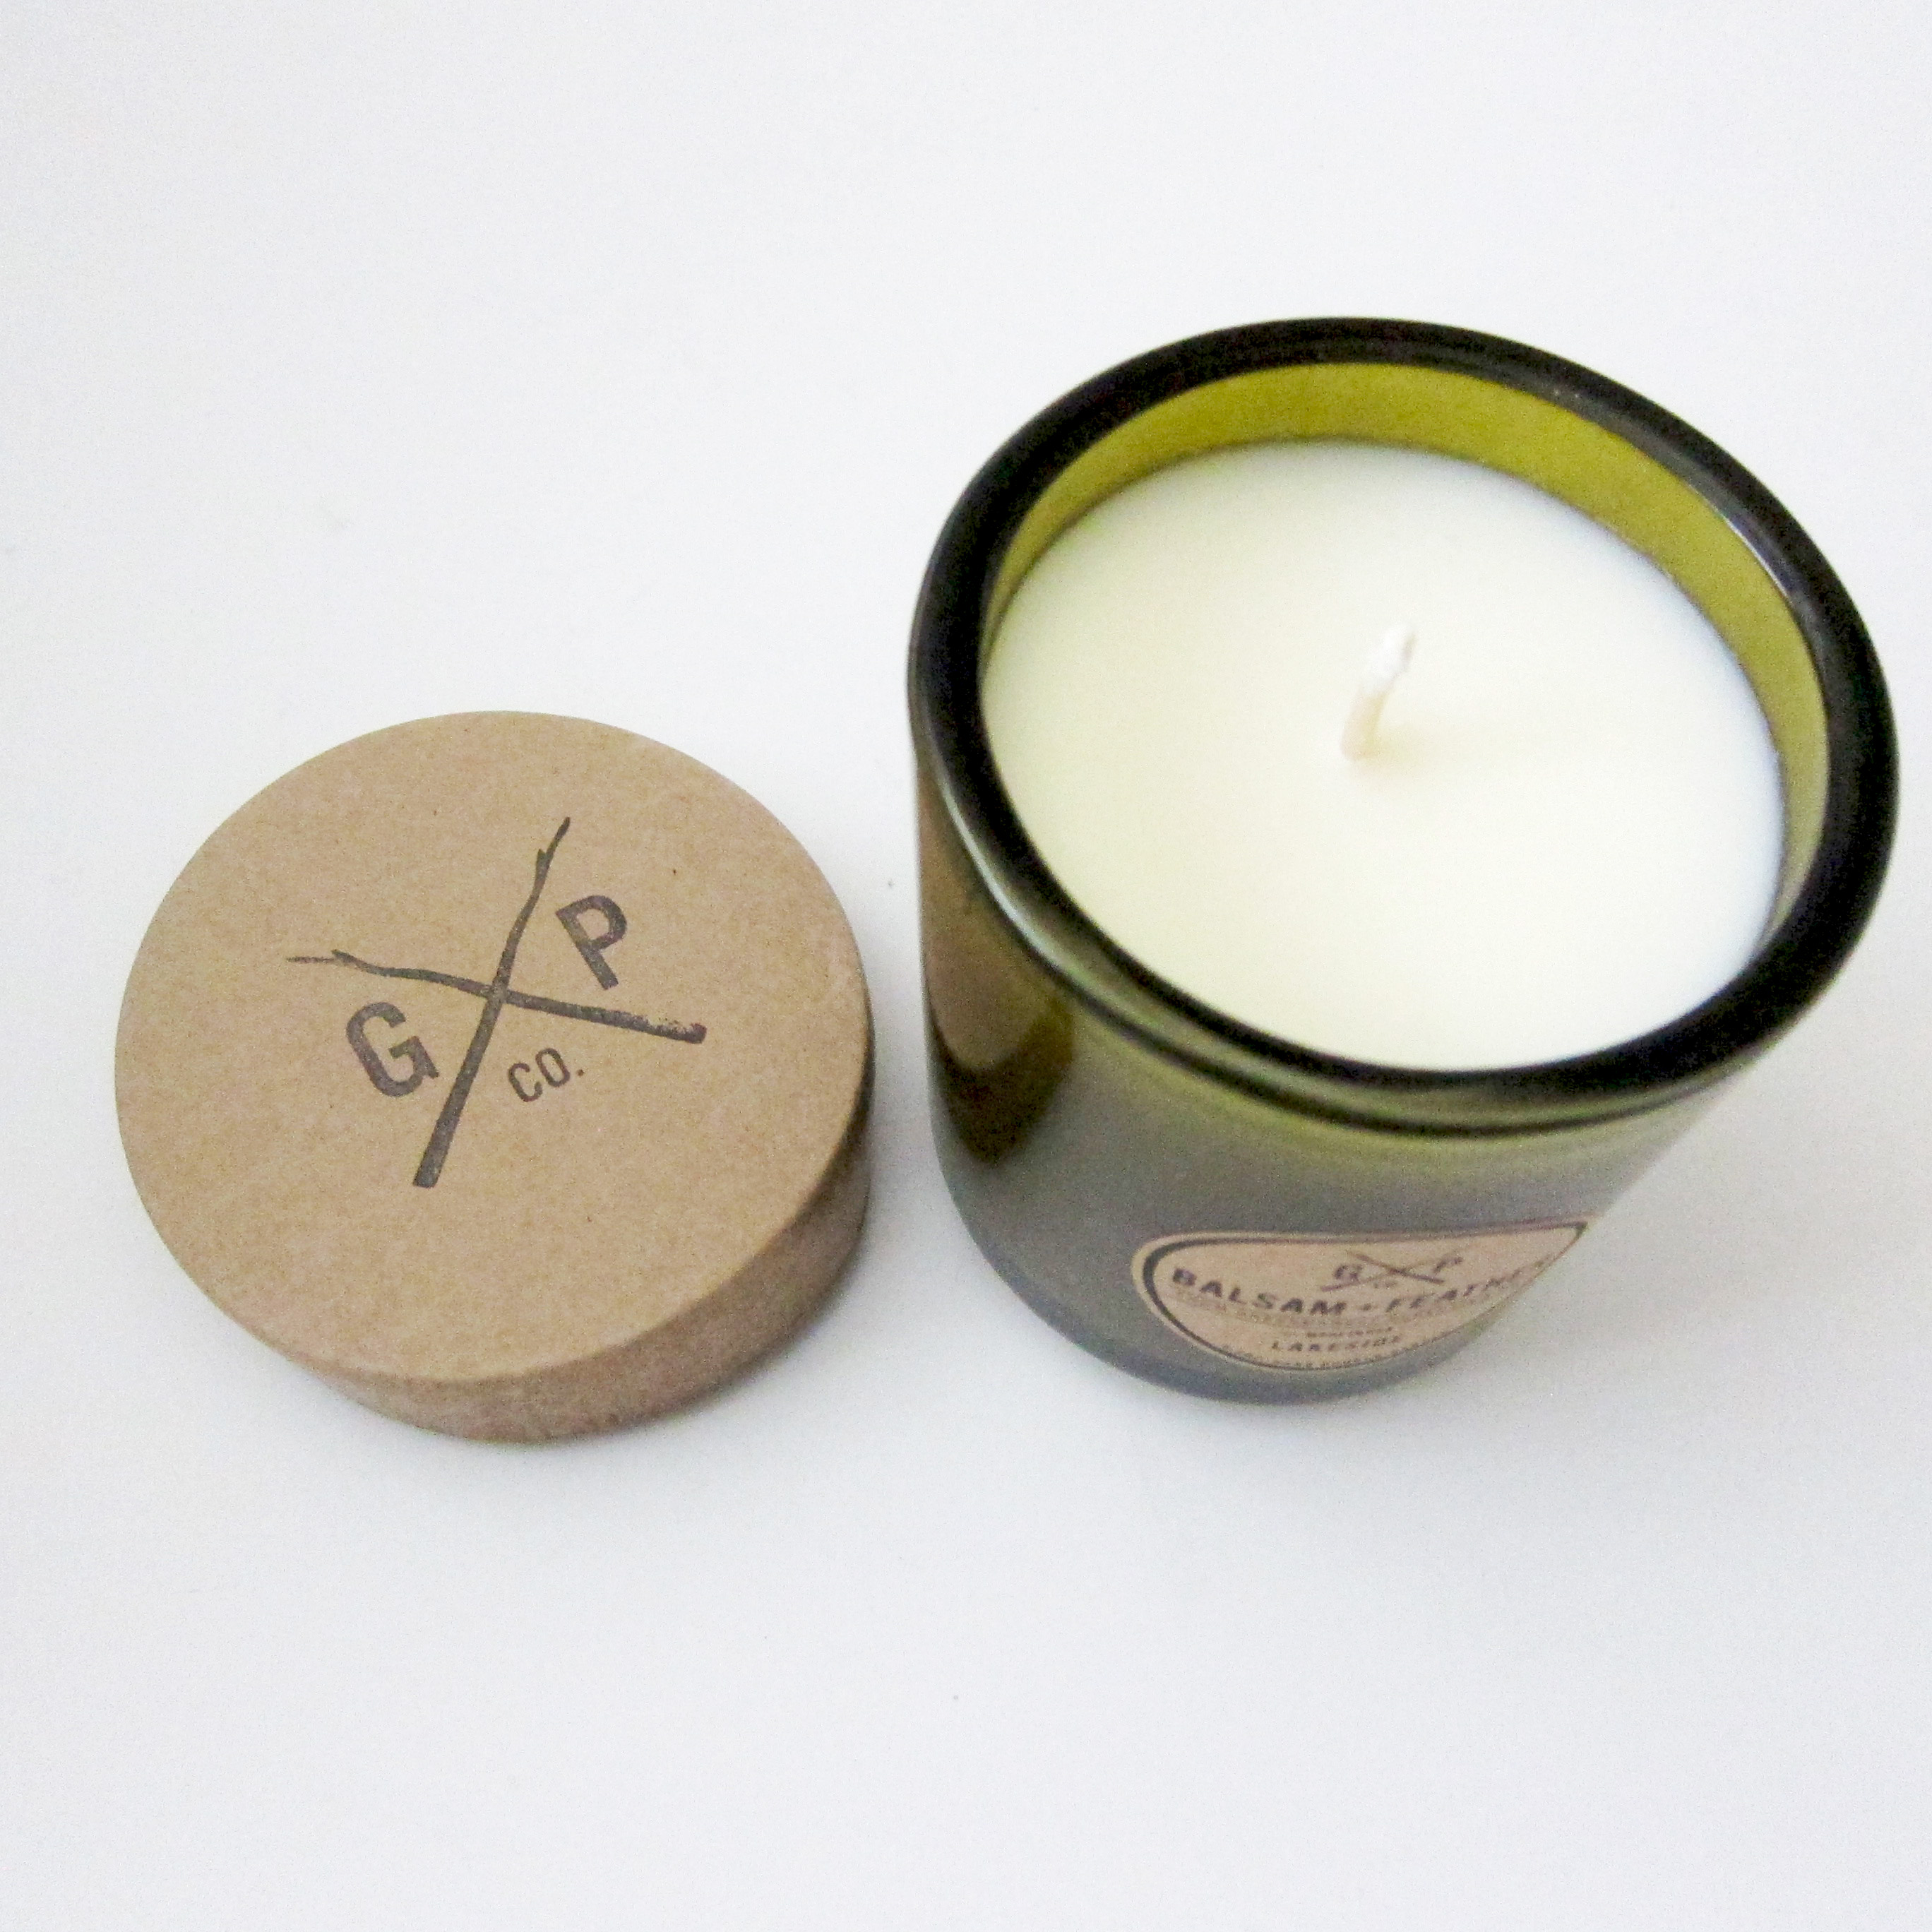 Greenmarket Purveying - Lakeside Balsam + Feather Candle